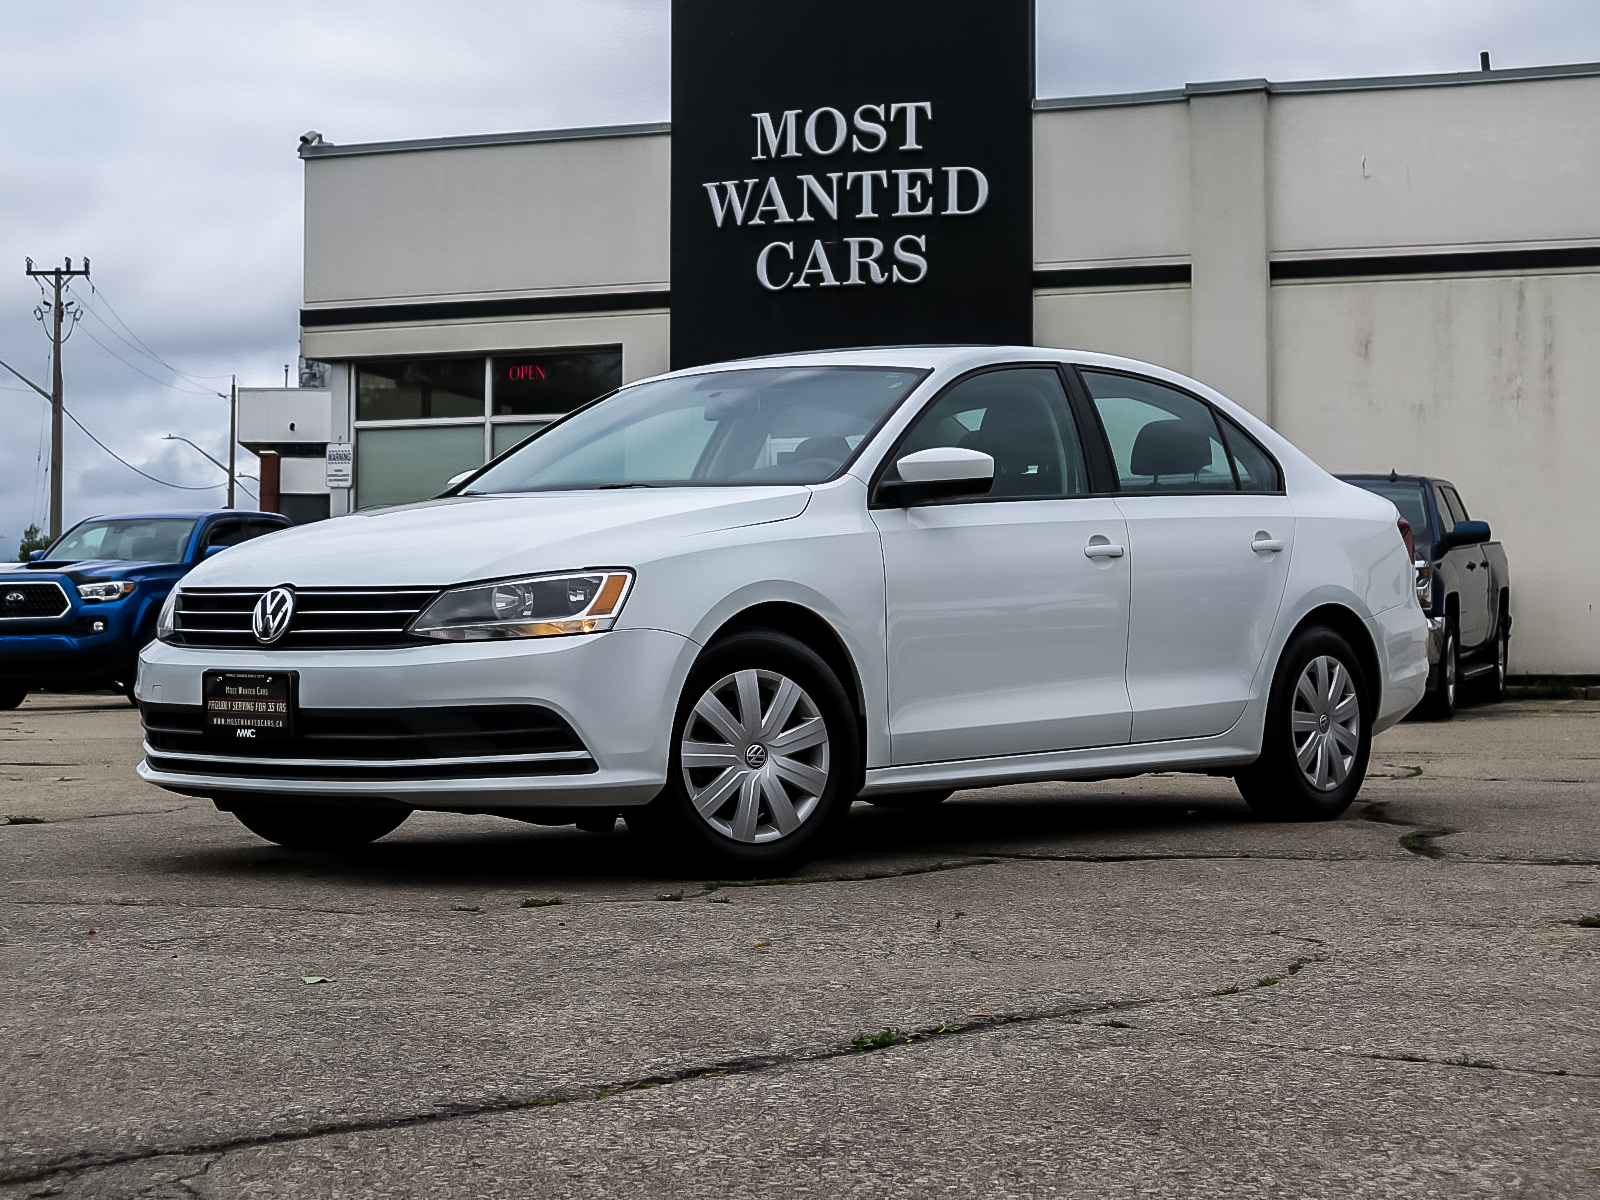 used 2017 Volkswagen Jetta car, priced at $16,982